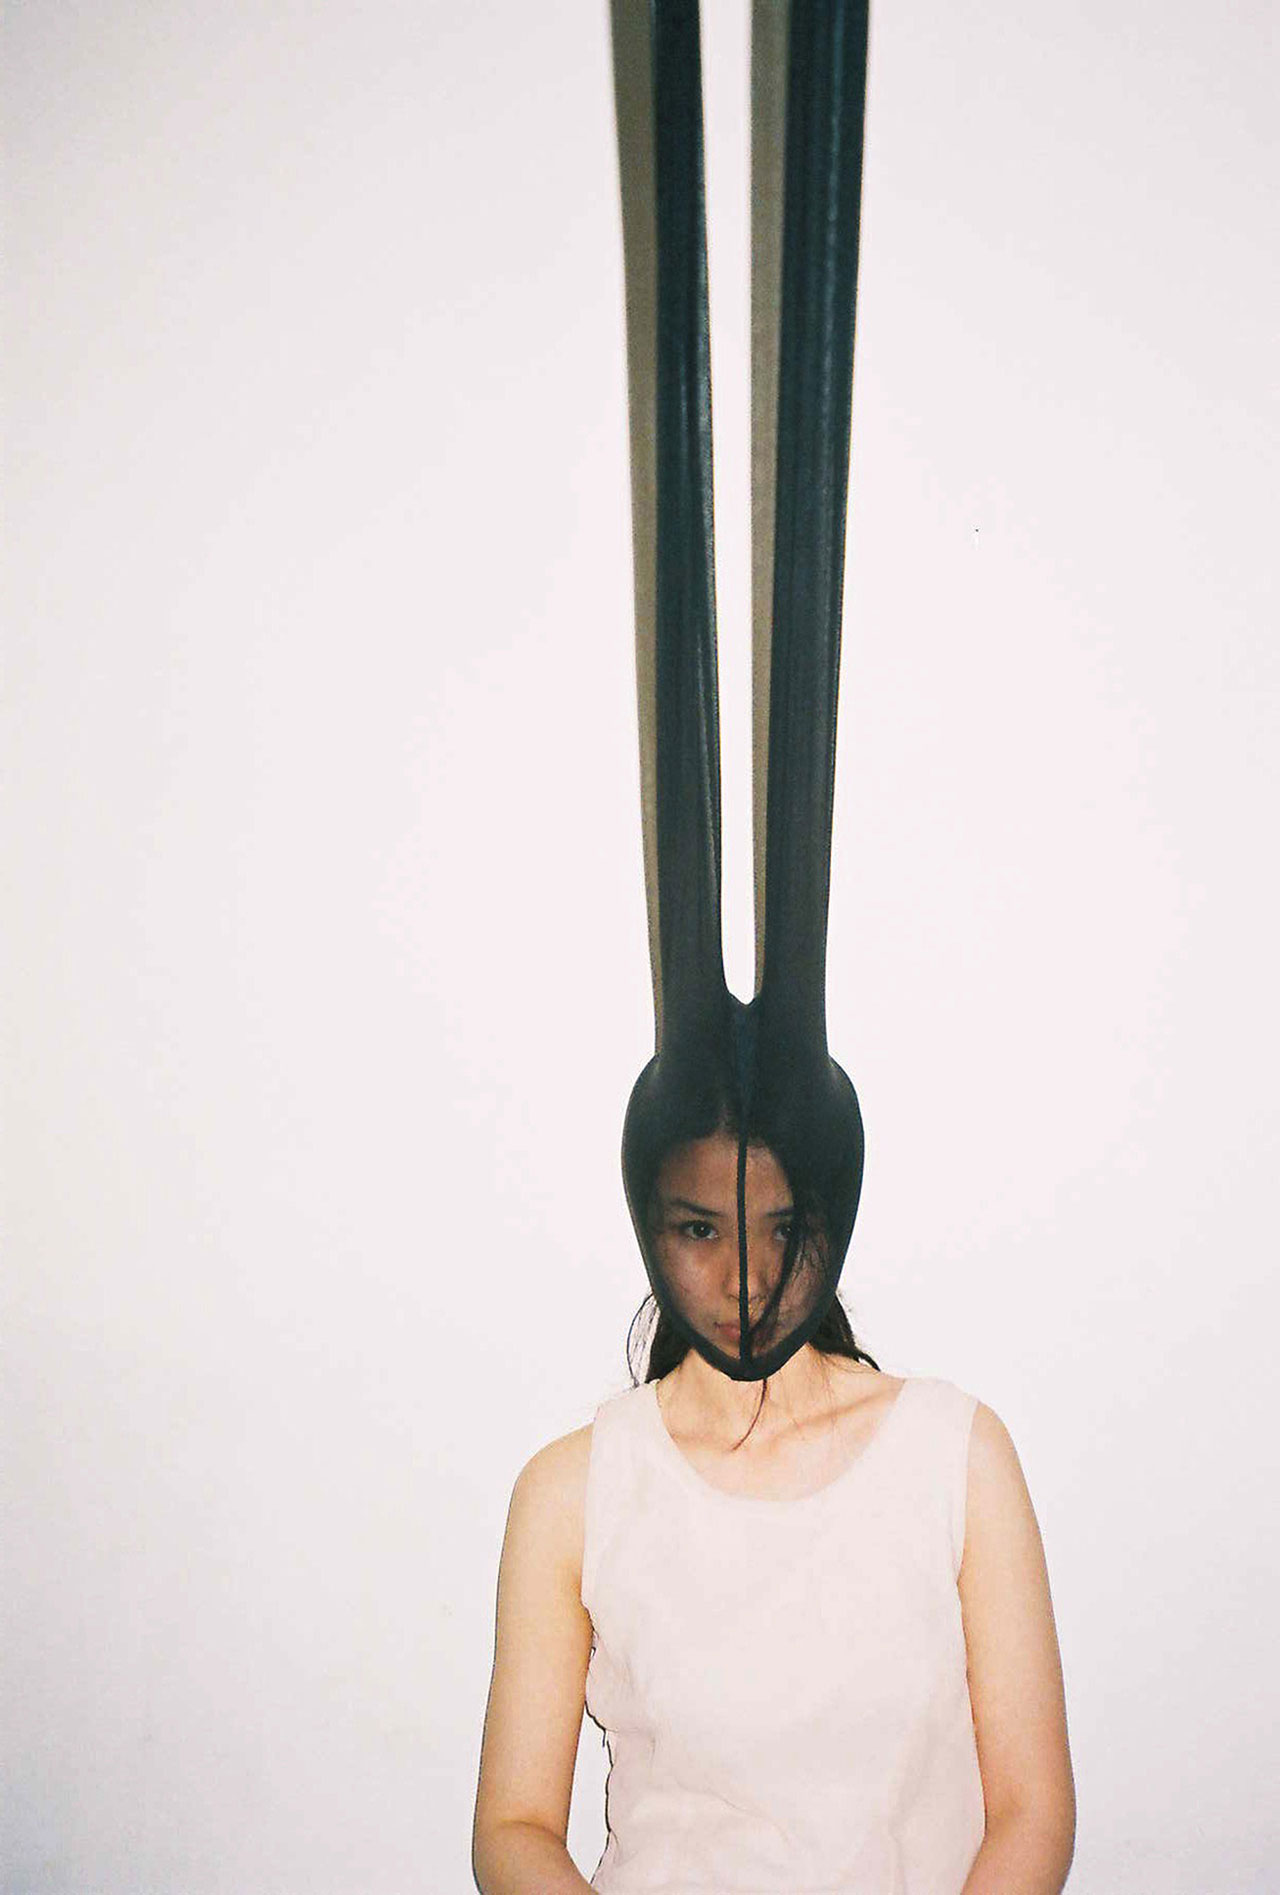 Ren Hang, Untitled, 2016 © Ren Hang.